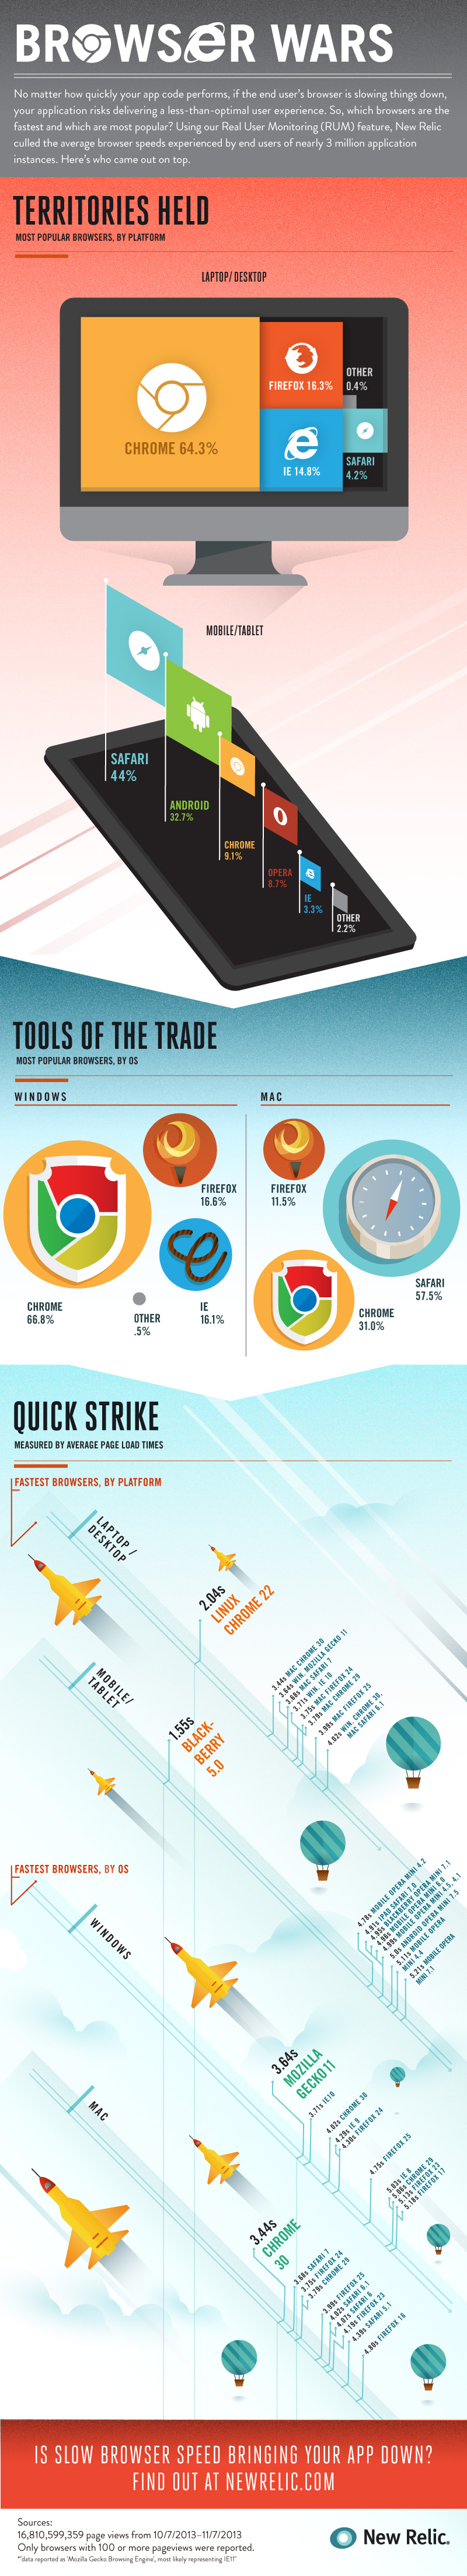 New Relic's browser wars